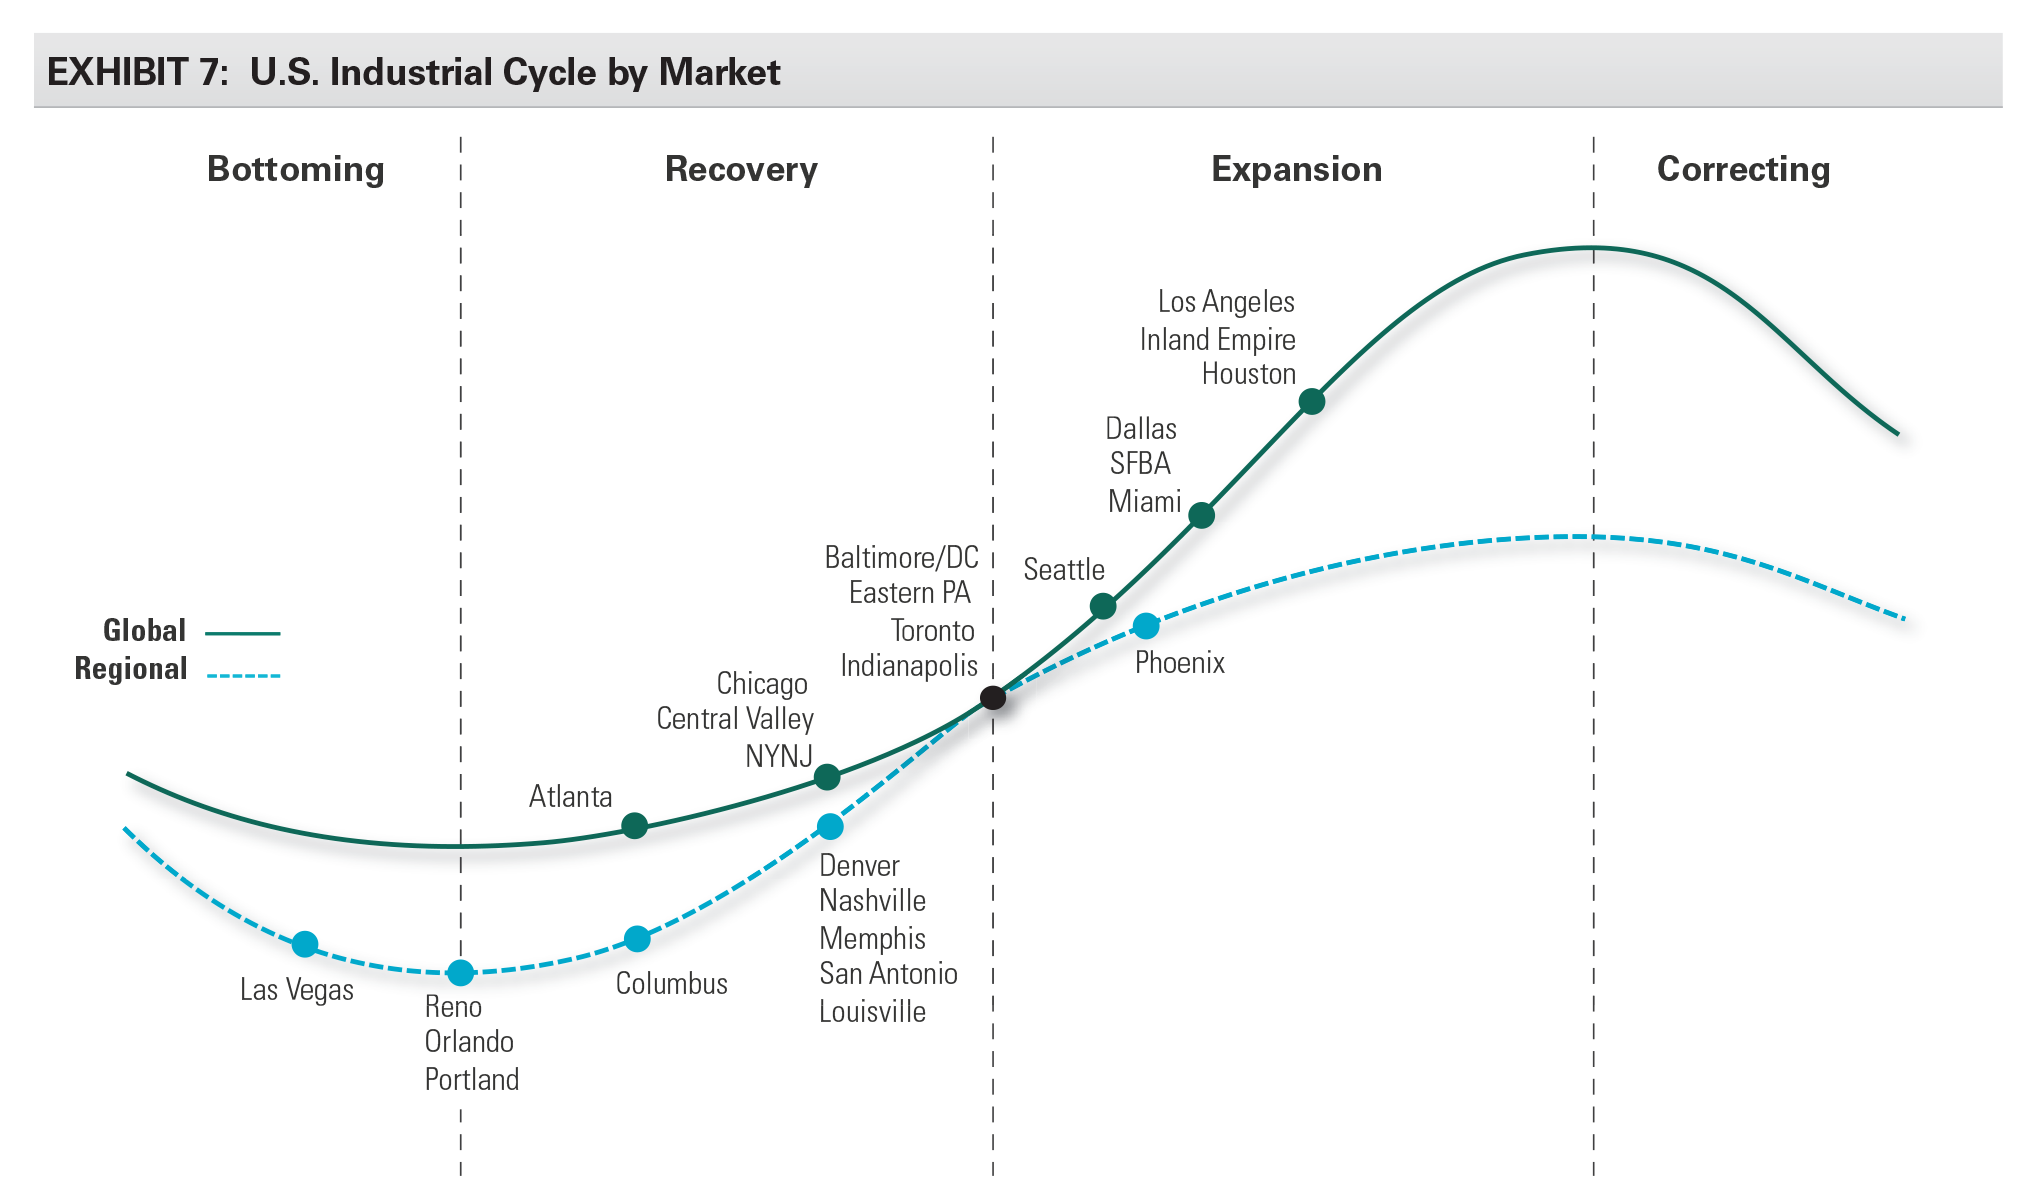 EXHIBIT 7: U.S. Industrial Cycle by Market